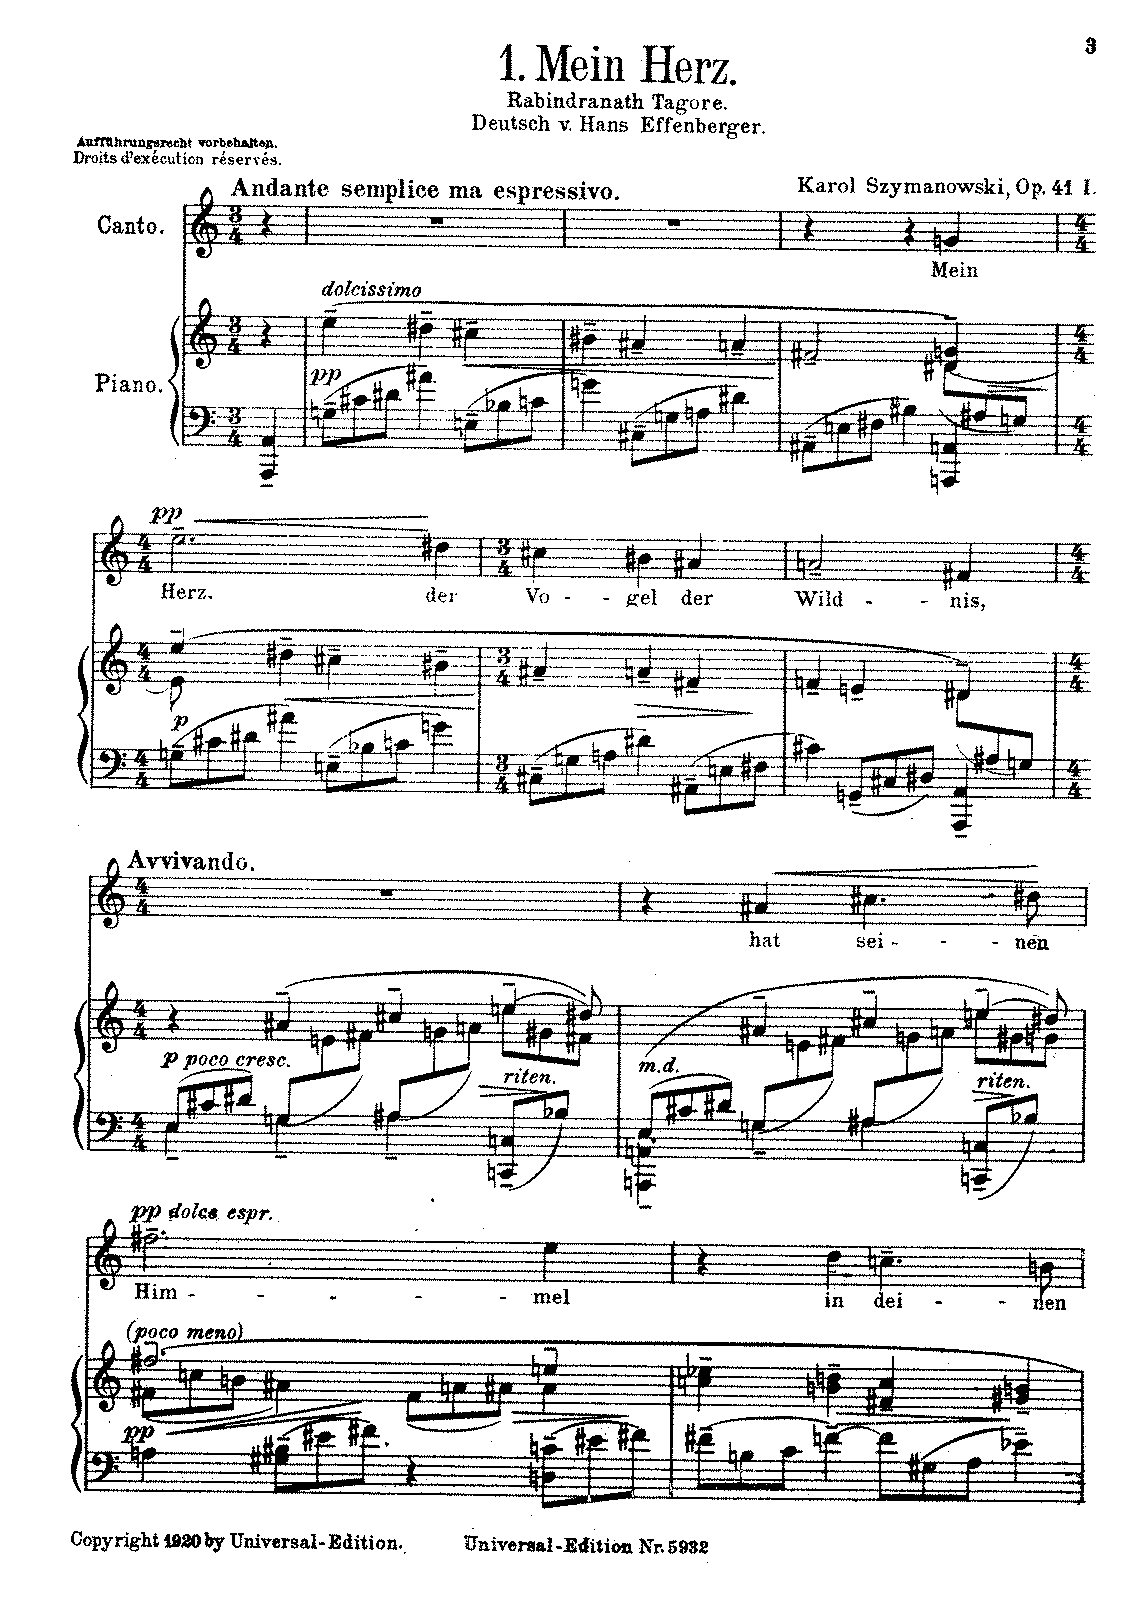 PMLP142394-Szymanowski--Songs-Op41--FE--Only-in-German.pdf